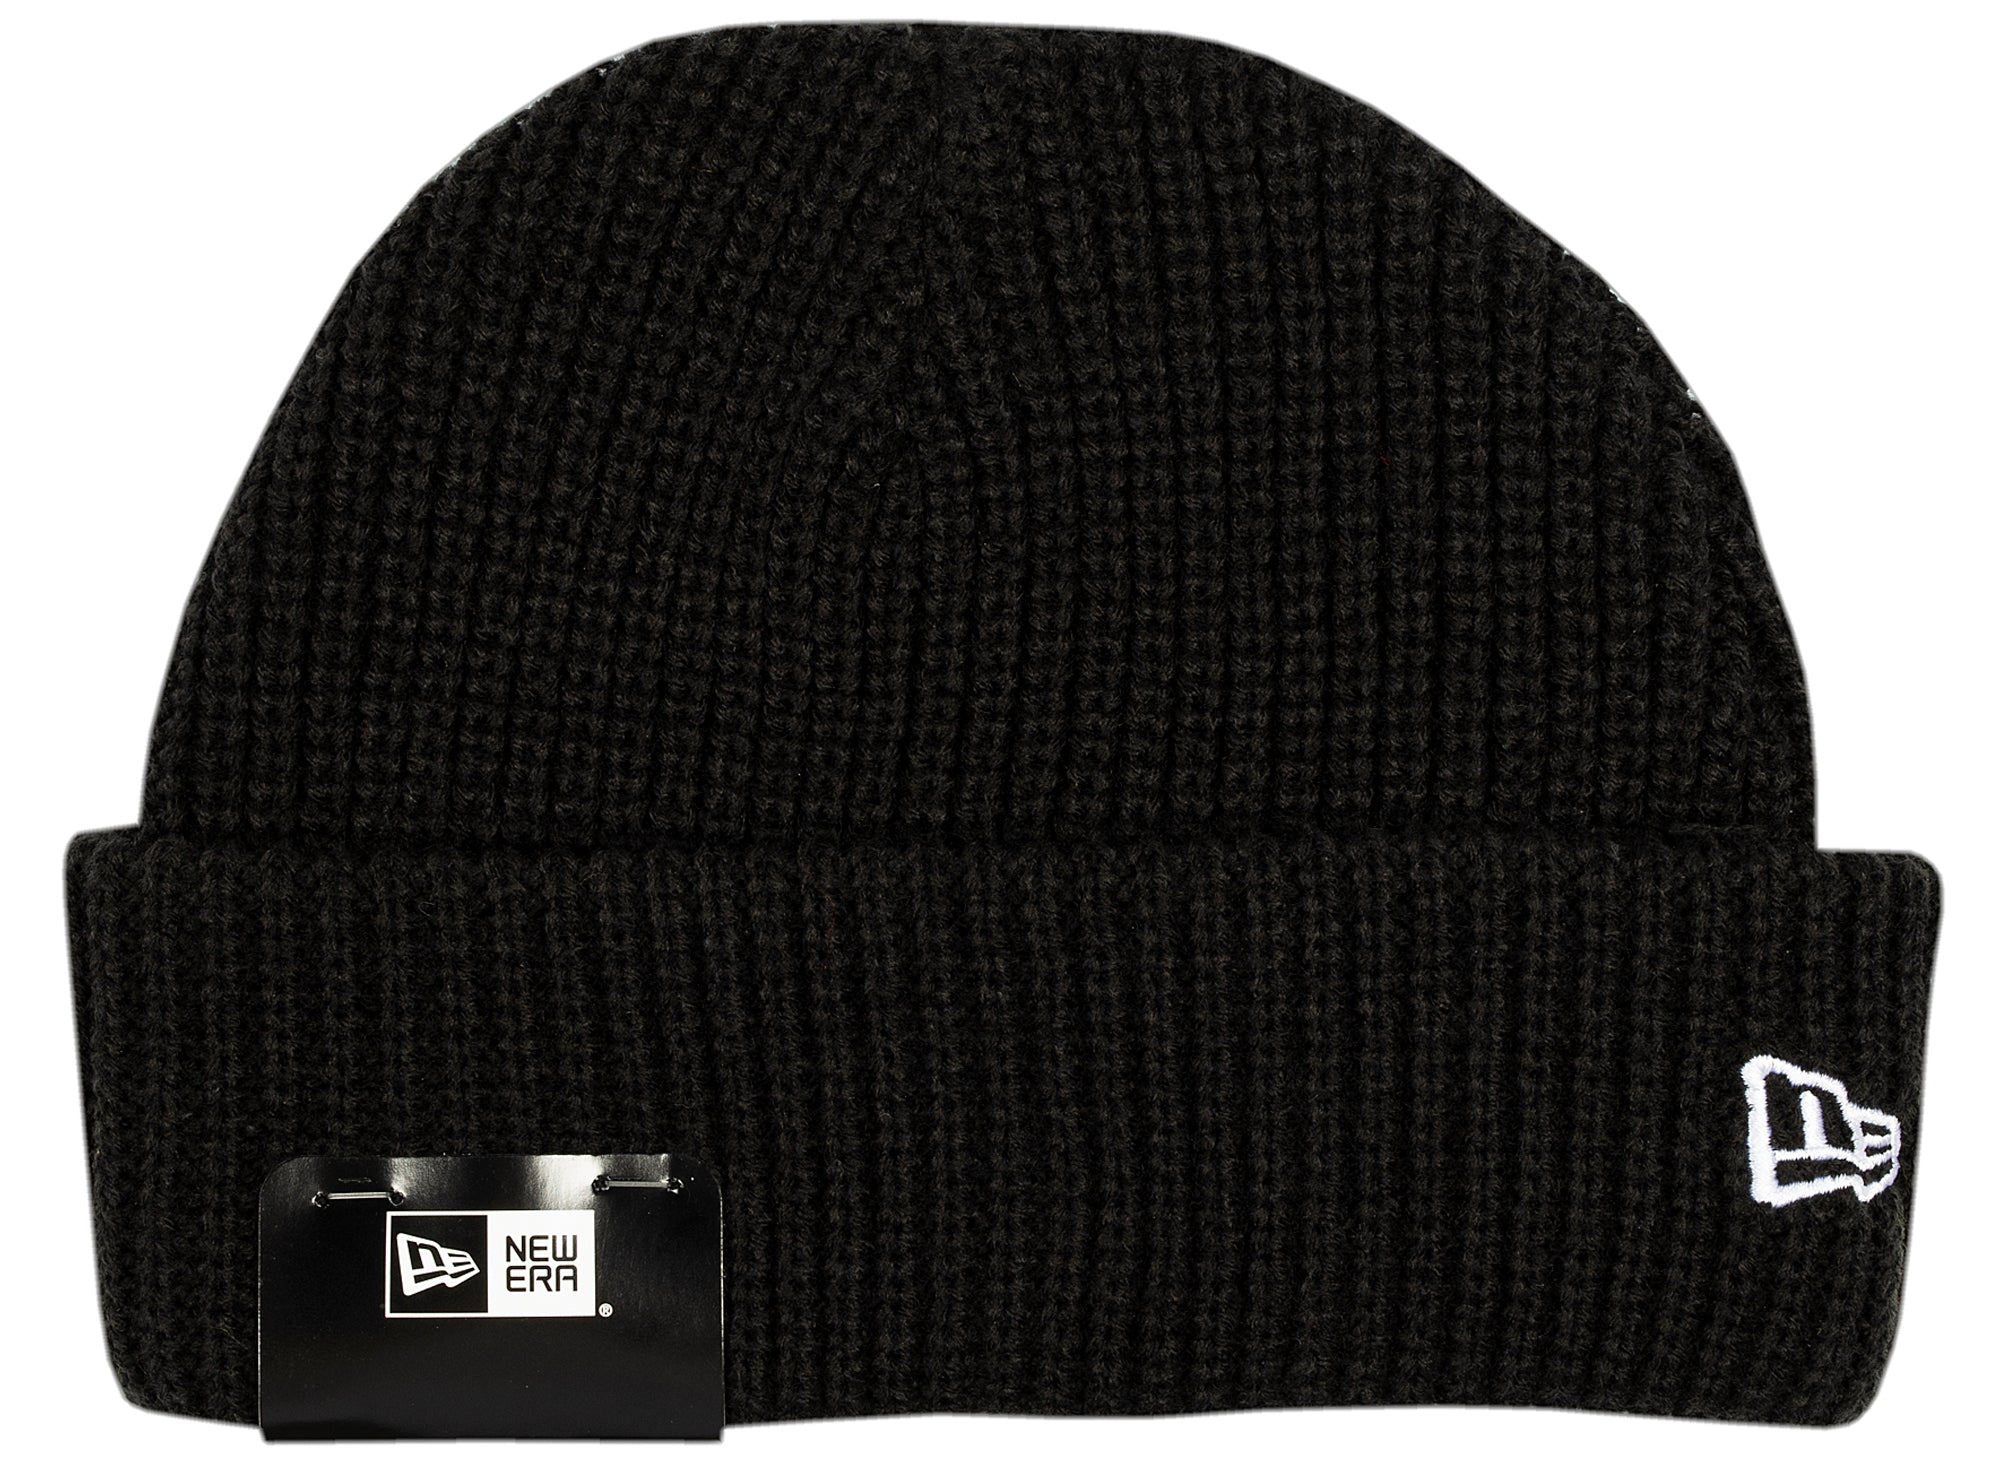 New Era Knit Skully Cap in Black